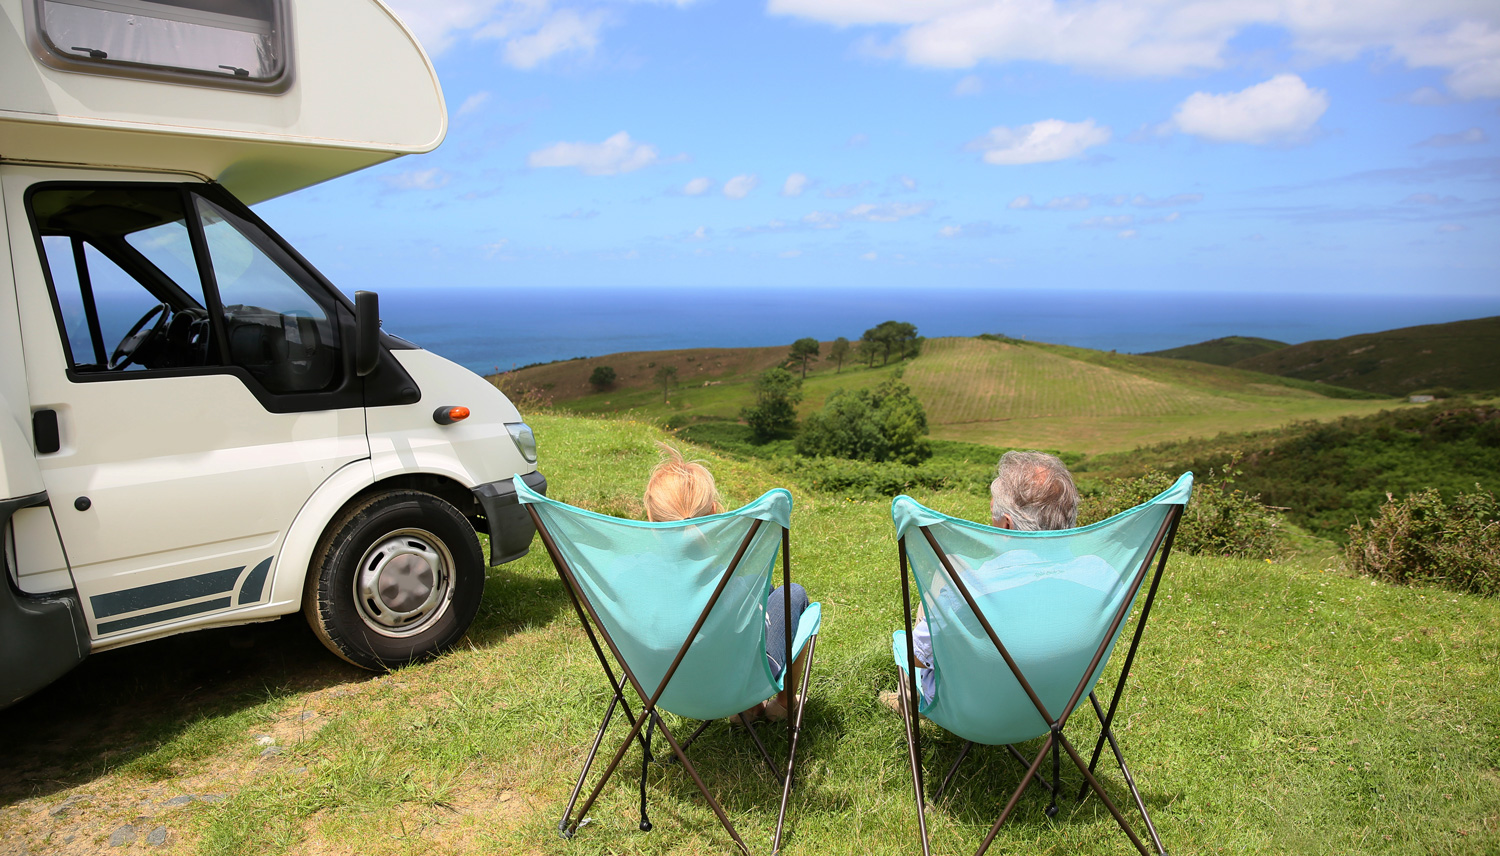 What can I use Equity Release for? Uses include paying for holidays and motorhomes